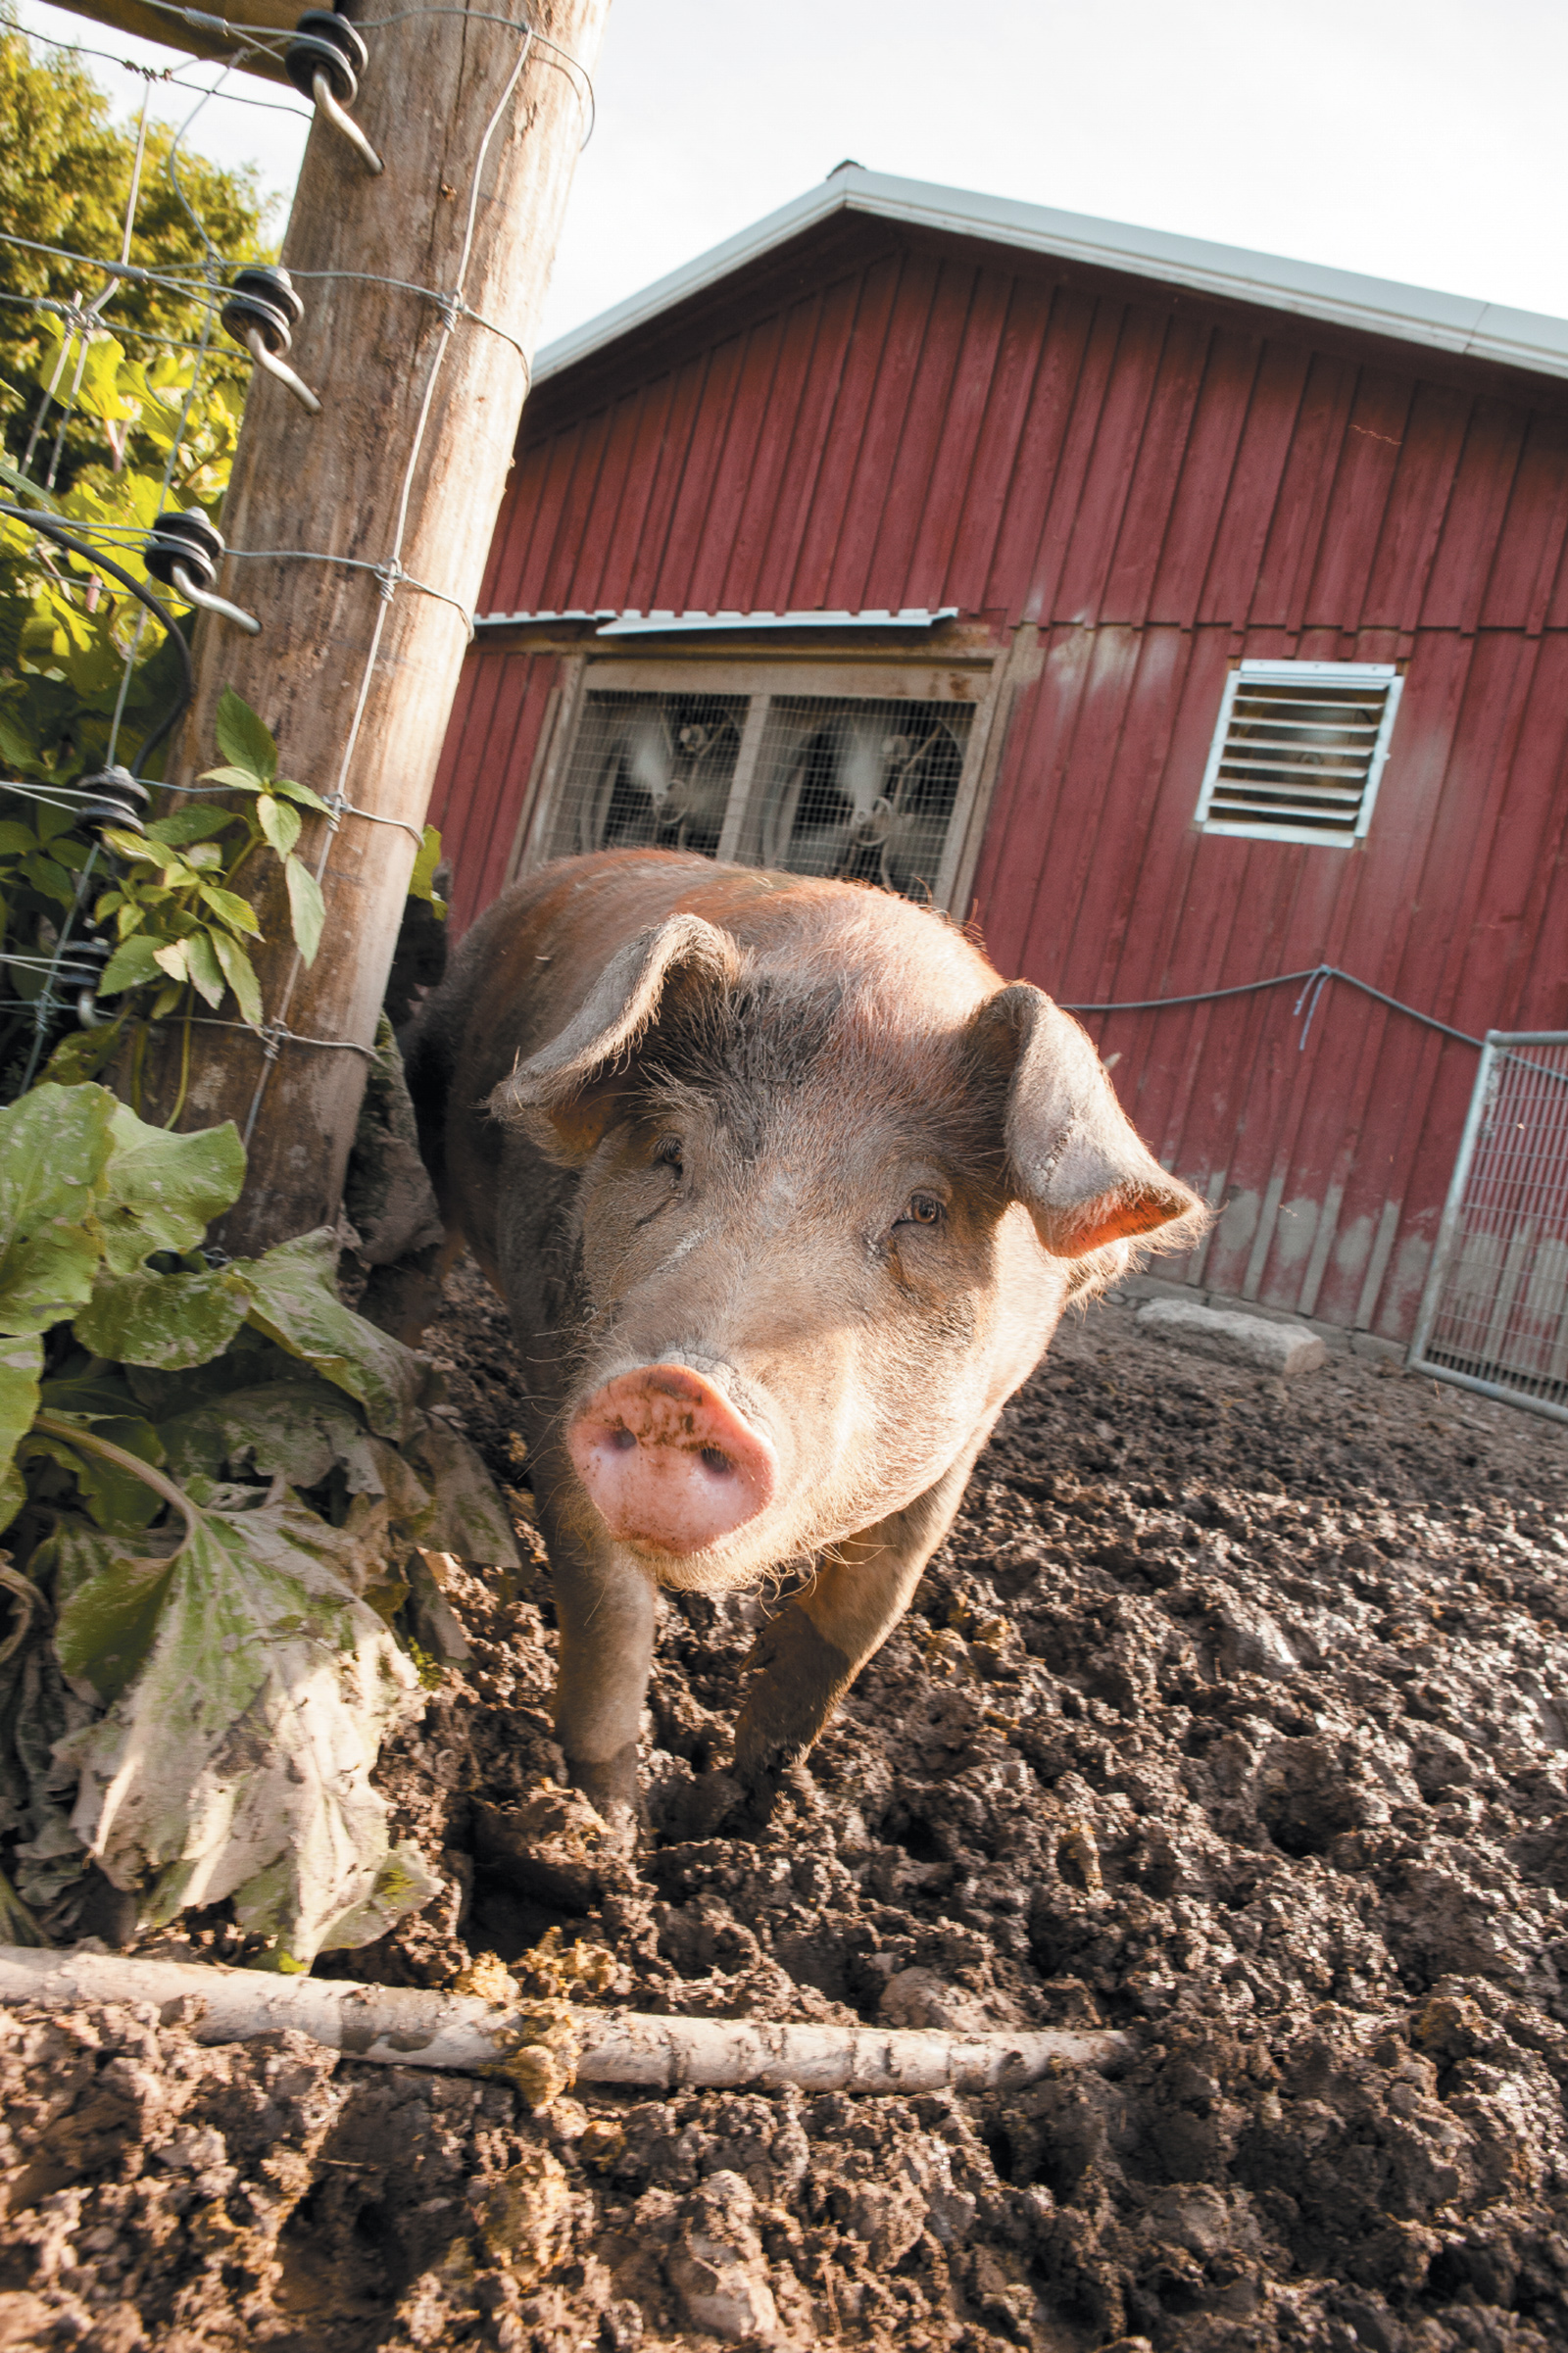 A young pig at J&D Farms, where the animals—raised for meat—roam in wooded lots and grassy paddocks, eating wild apples and foraging for tubers, Eaton, New York, June 2015